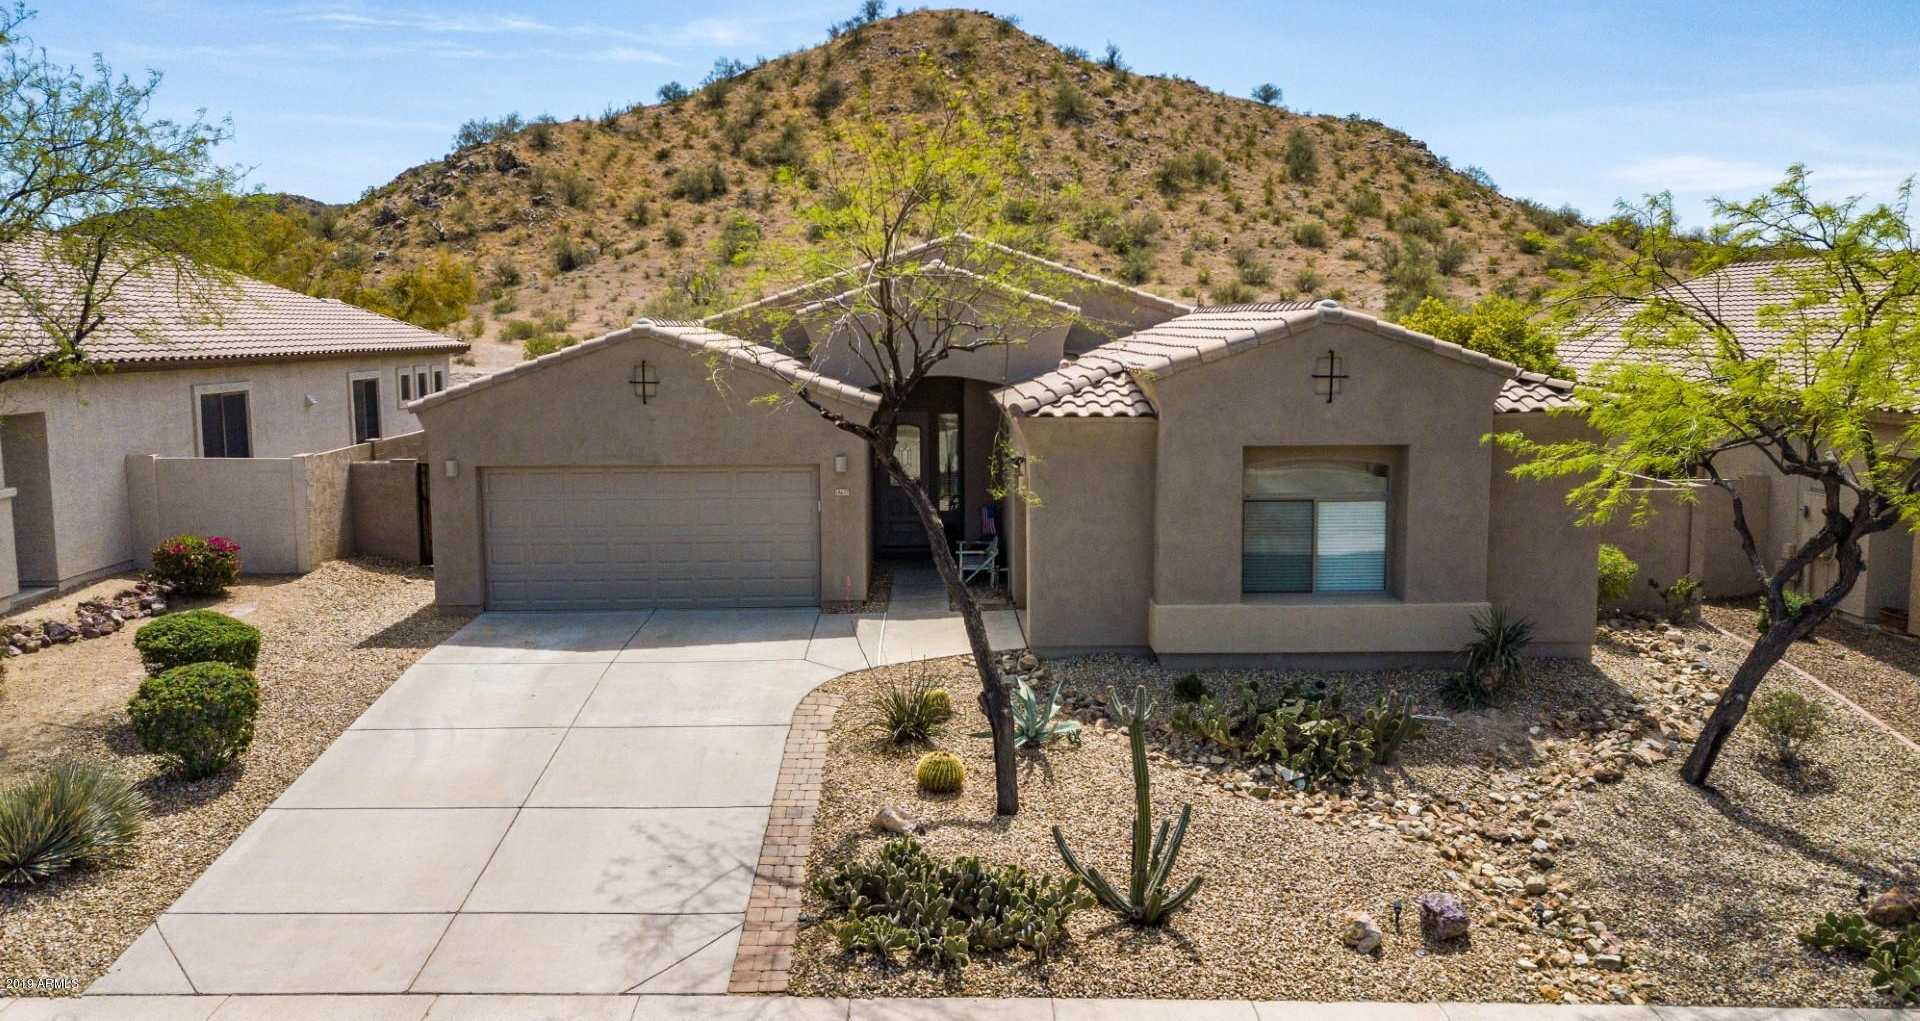 $315,000 - 4Br/2Ba - Home for Sale in Sunchase At Estrella Parcel Nos 62-64, Goodyear